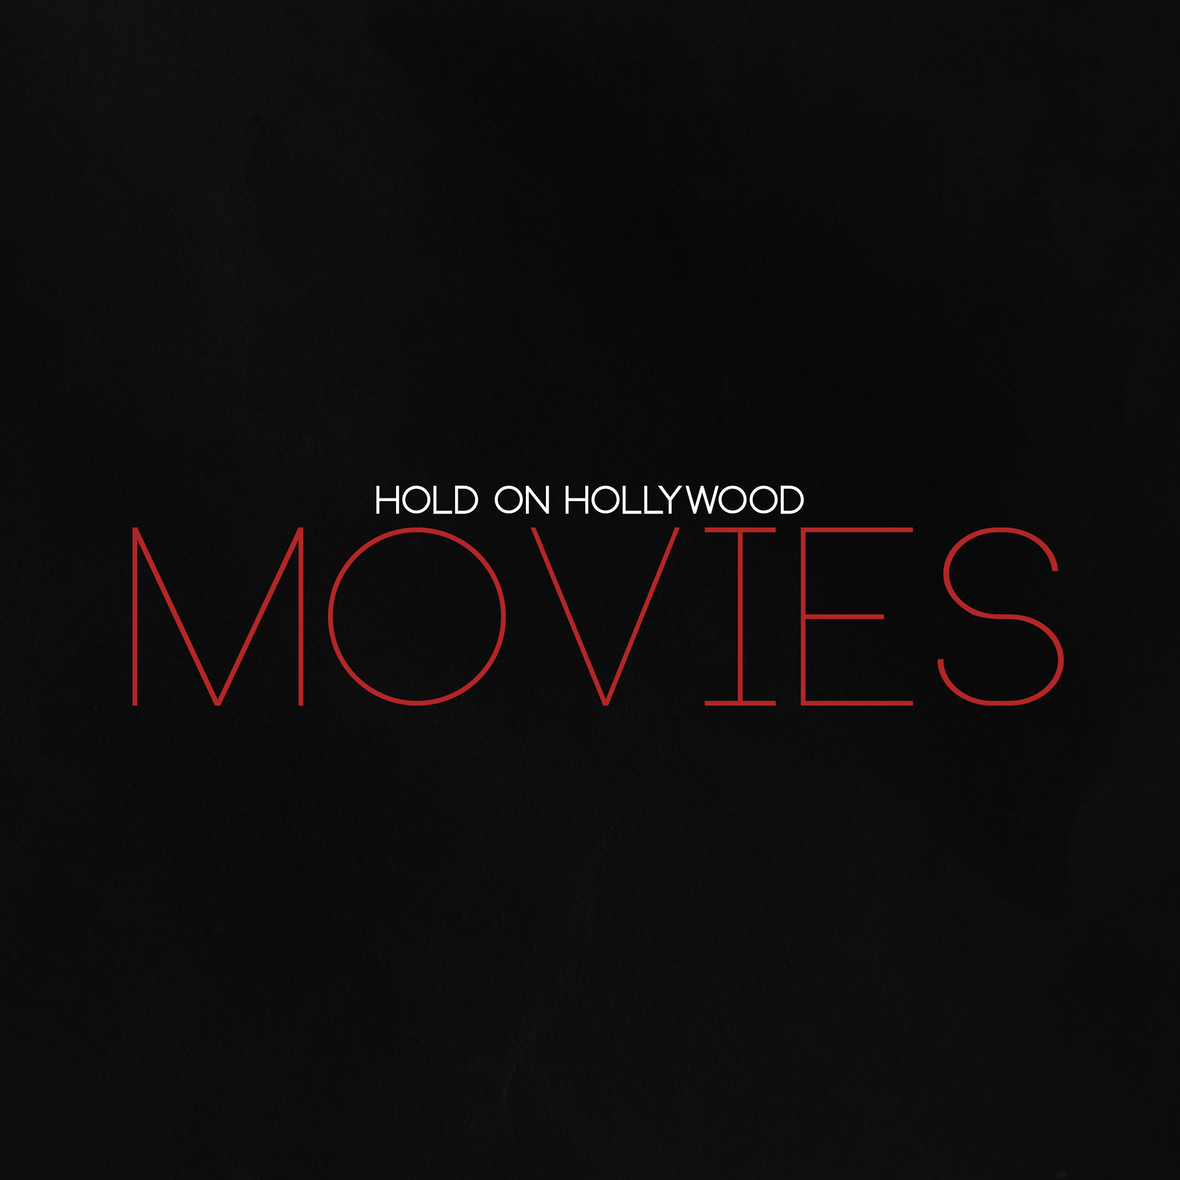 Movies final 3000px